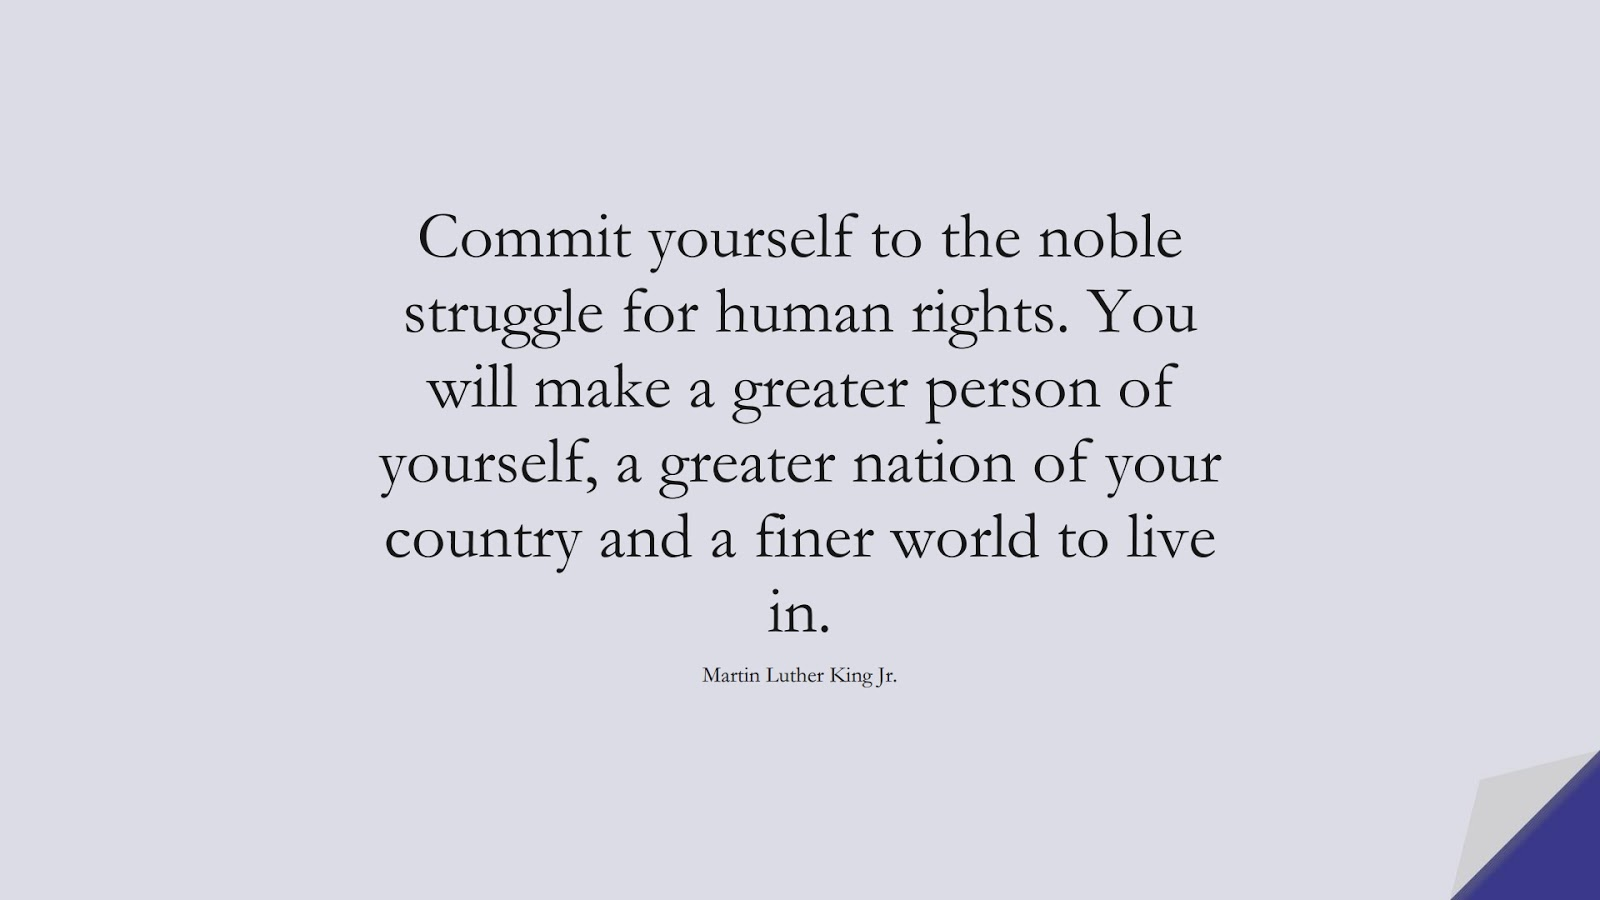 Commit yourself to the noble struggle for human rights. You will make a greater person of yourself, a greater nation of your country and a finer world to live in. (Martin Luther King Jr.);  #MartinLutherKingJrQuotes